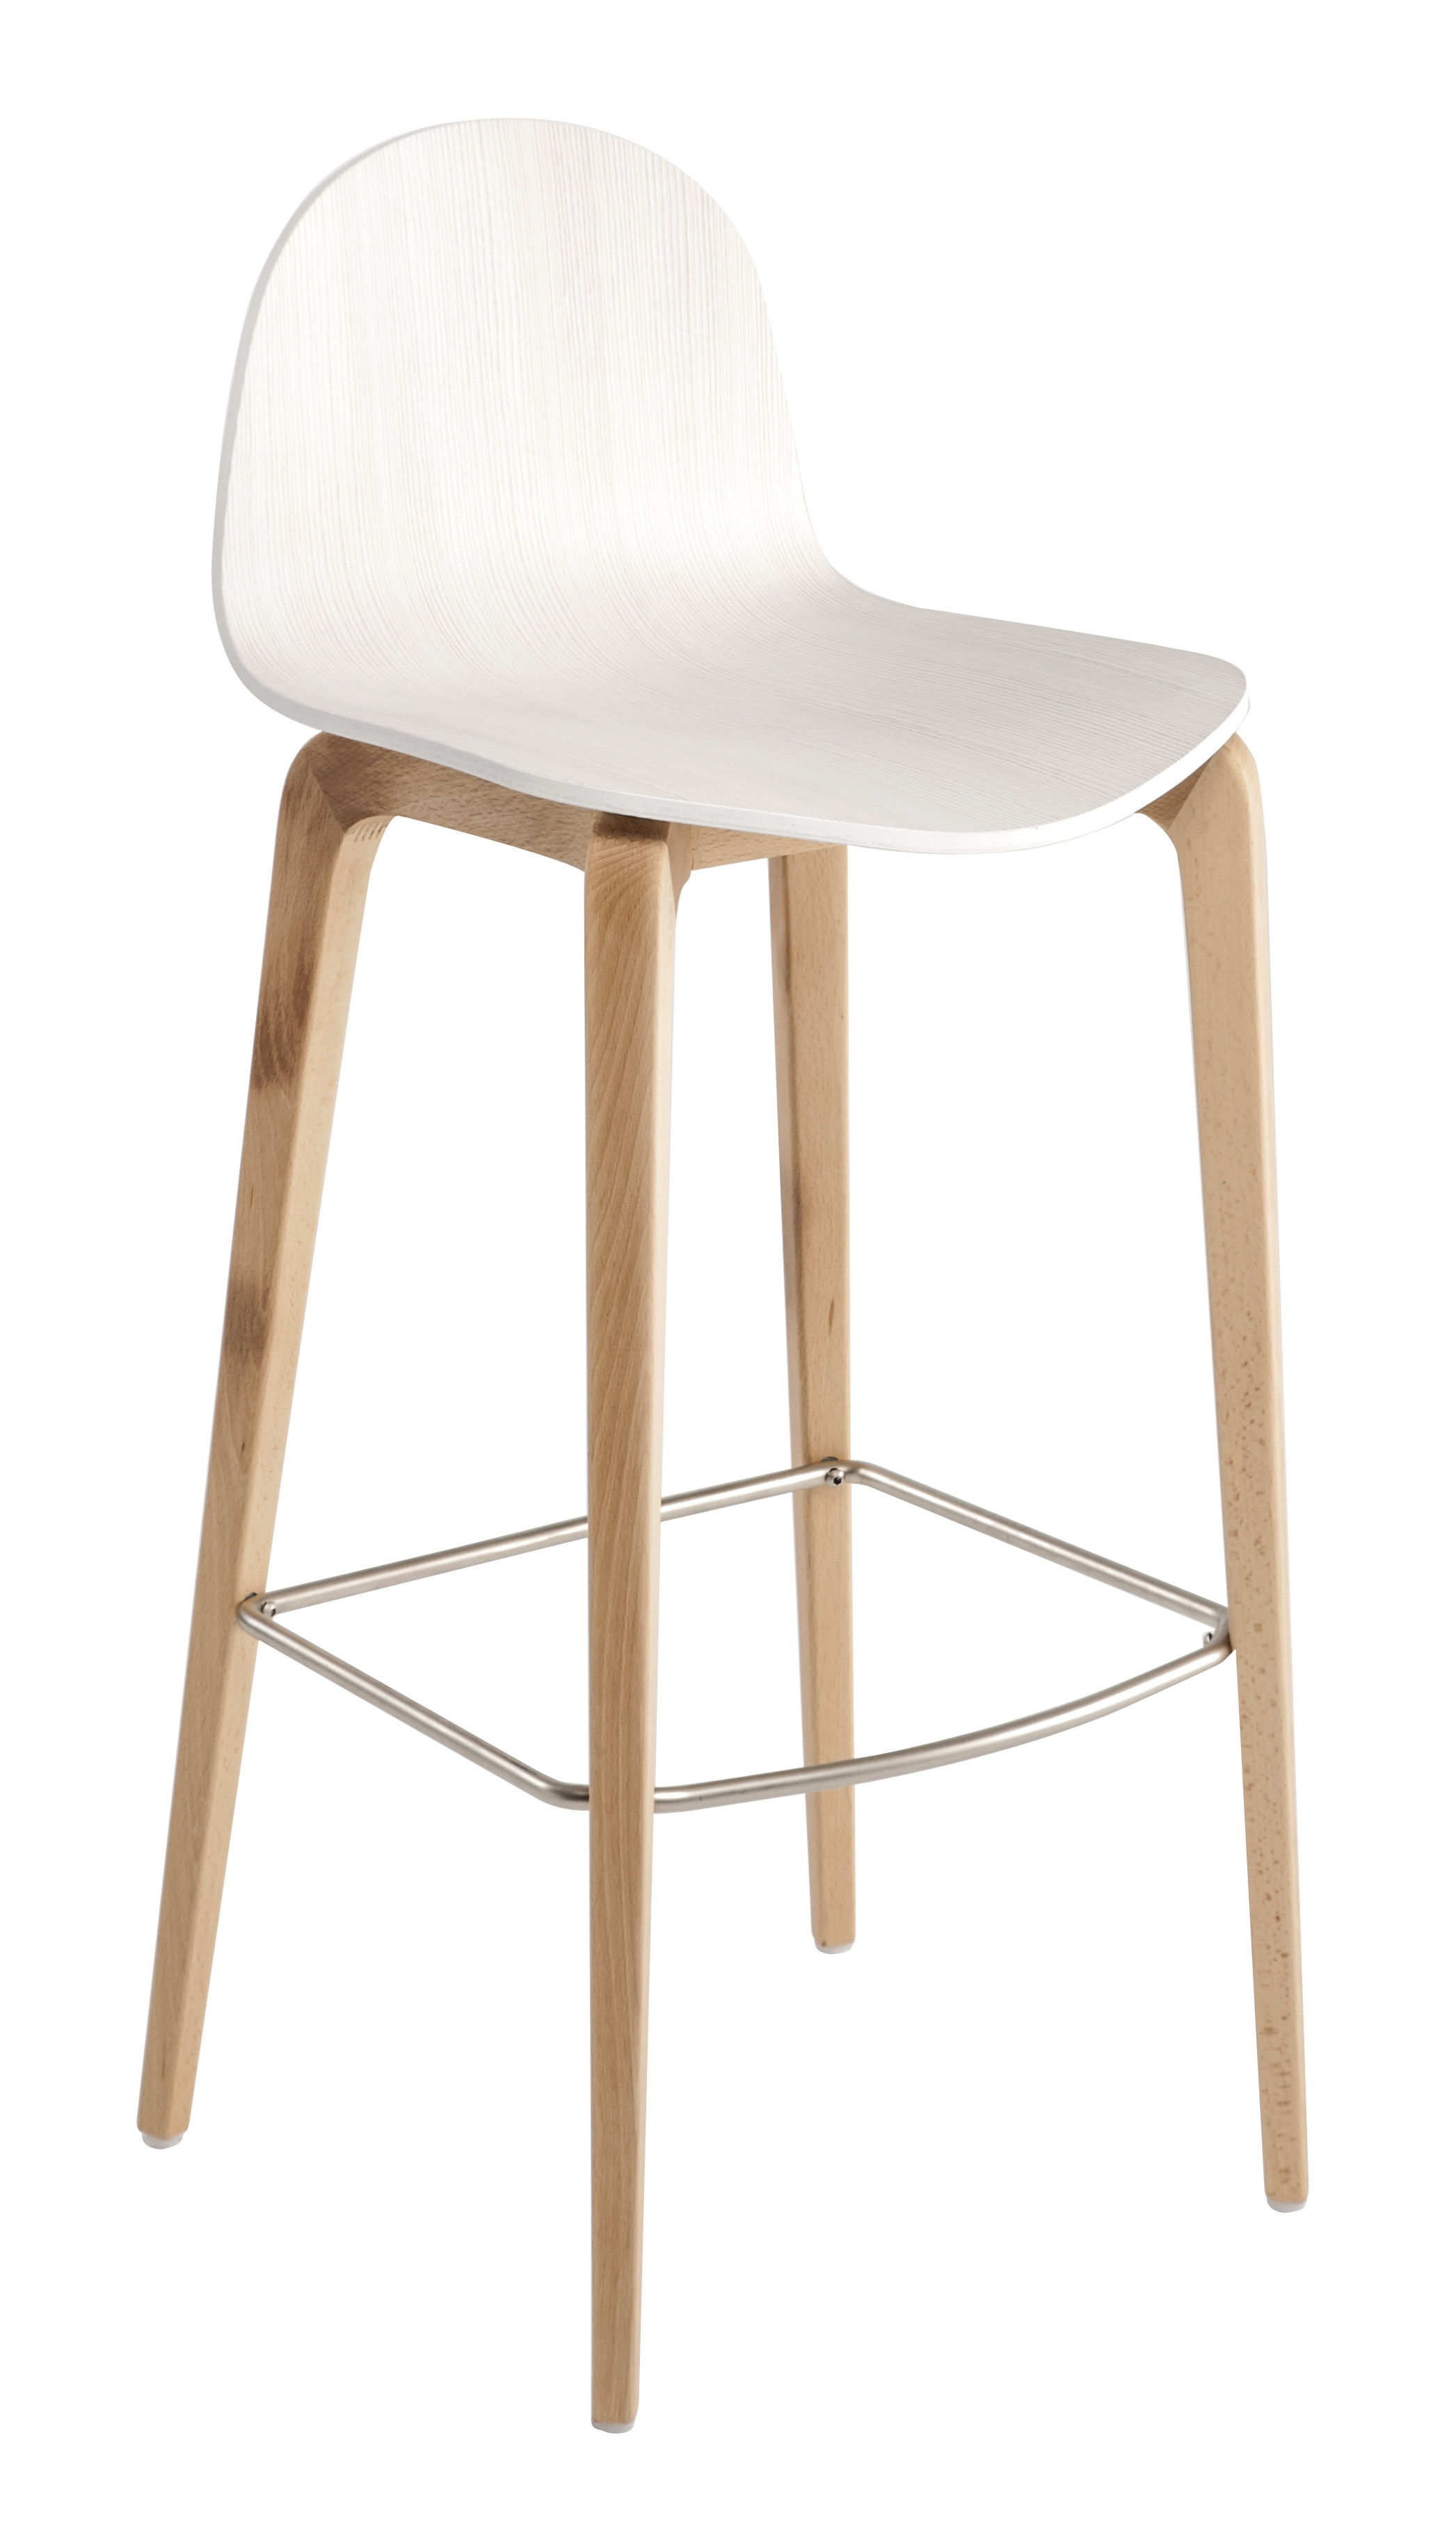 tabouret de bar bob h 75 cm bois blanc bois ondarreta. Black Bedroom Furniture Sets. Home Design Ideas